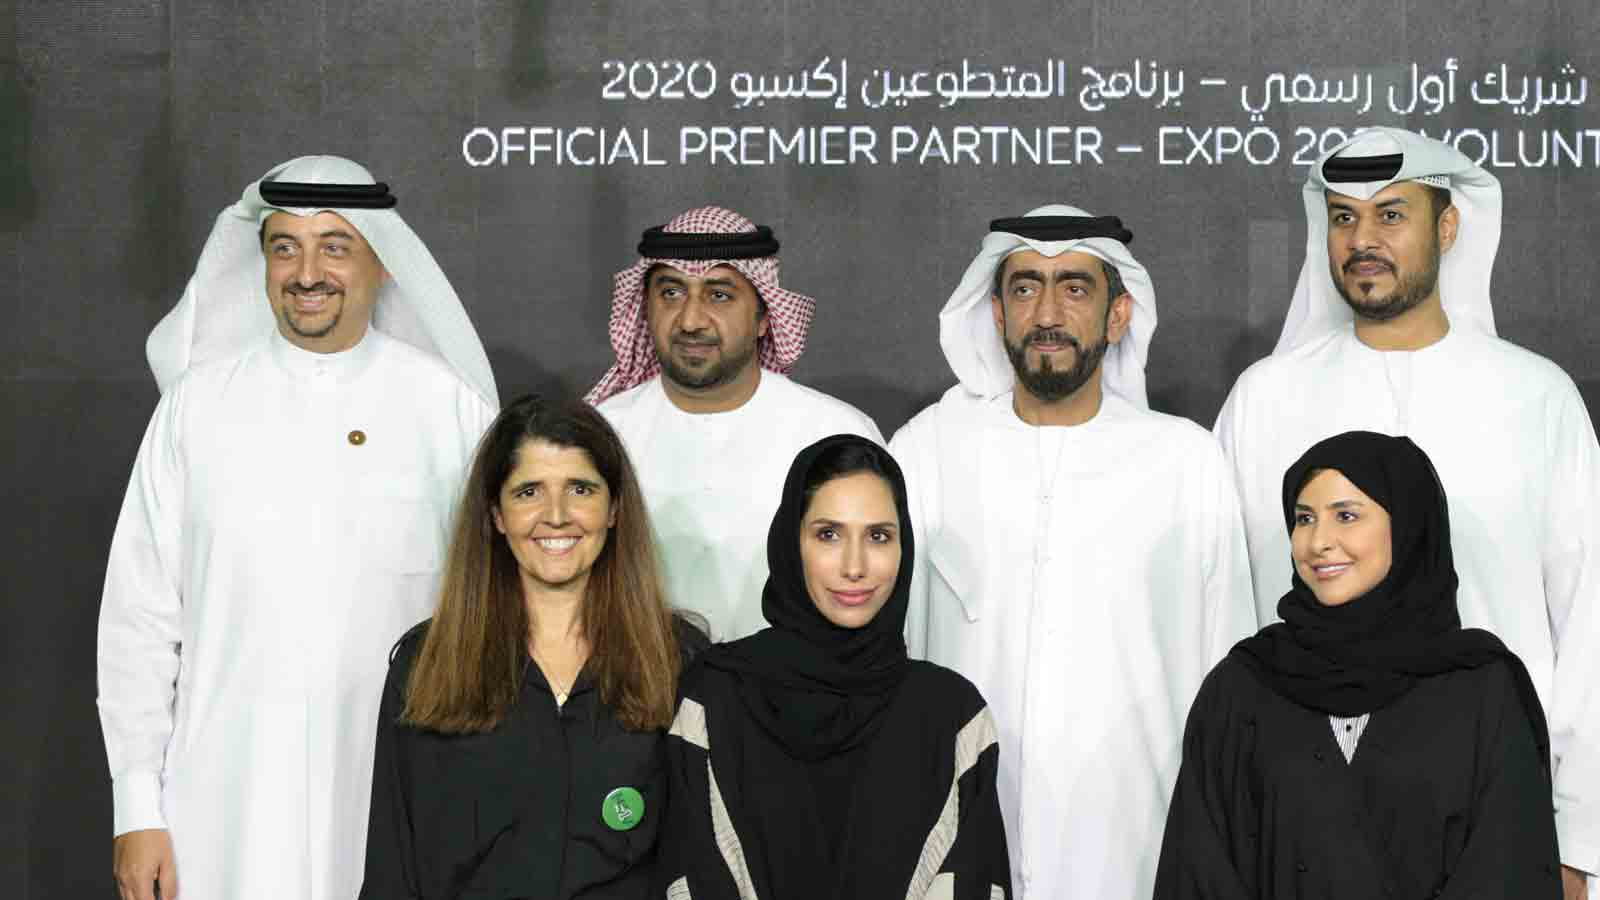 Etisalat & Expo Volunteers